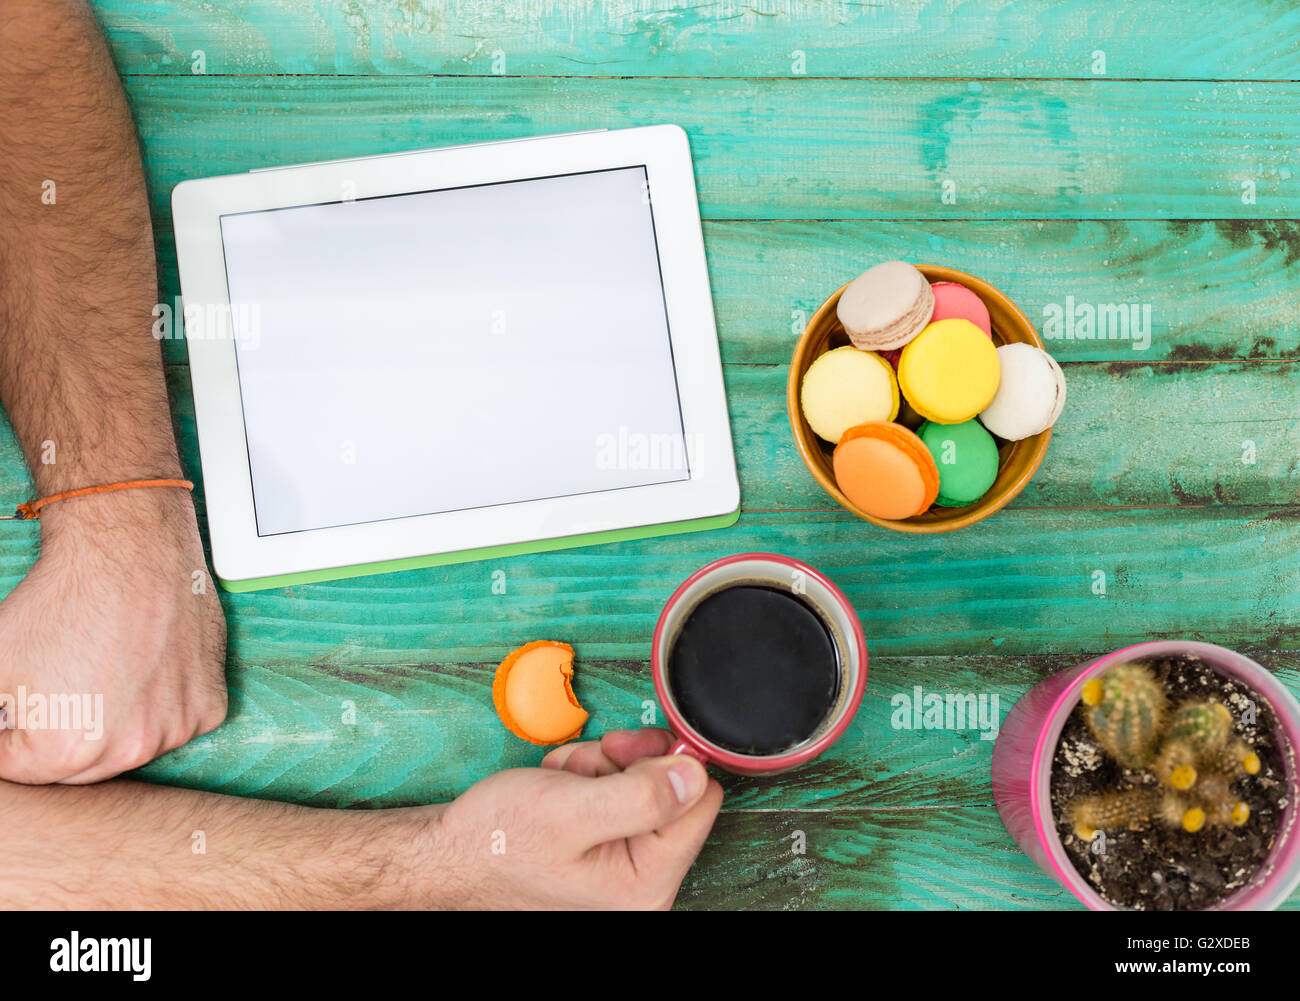 Digital tablet computer with isolated screen in male hands over cafe background - cakae and cafee time - Stock Image